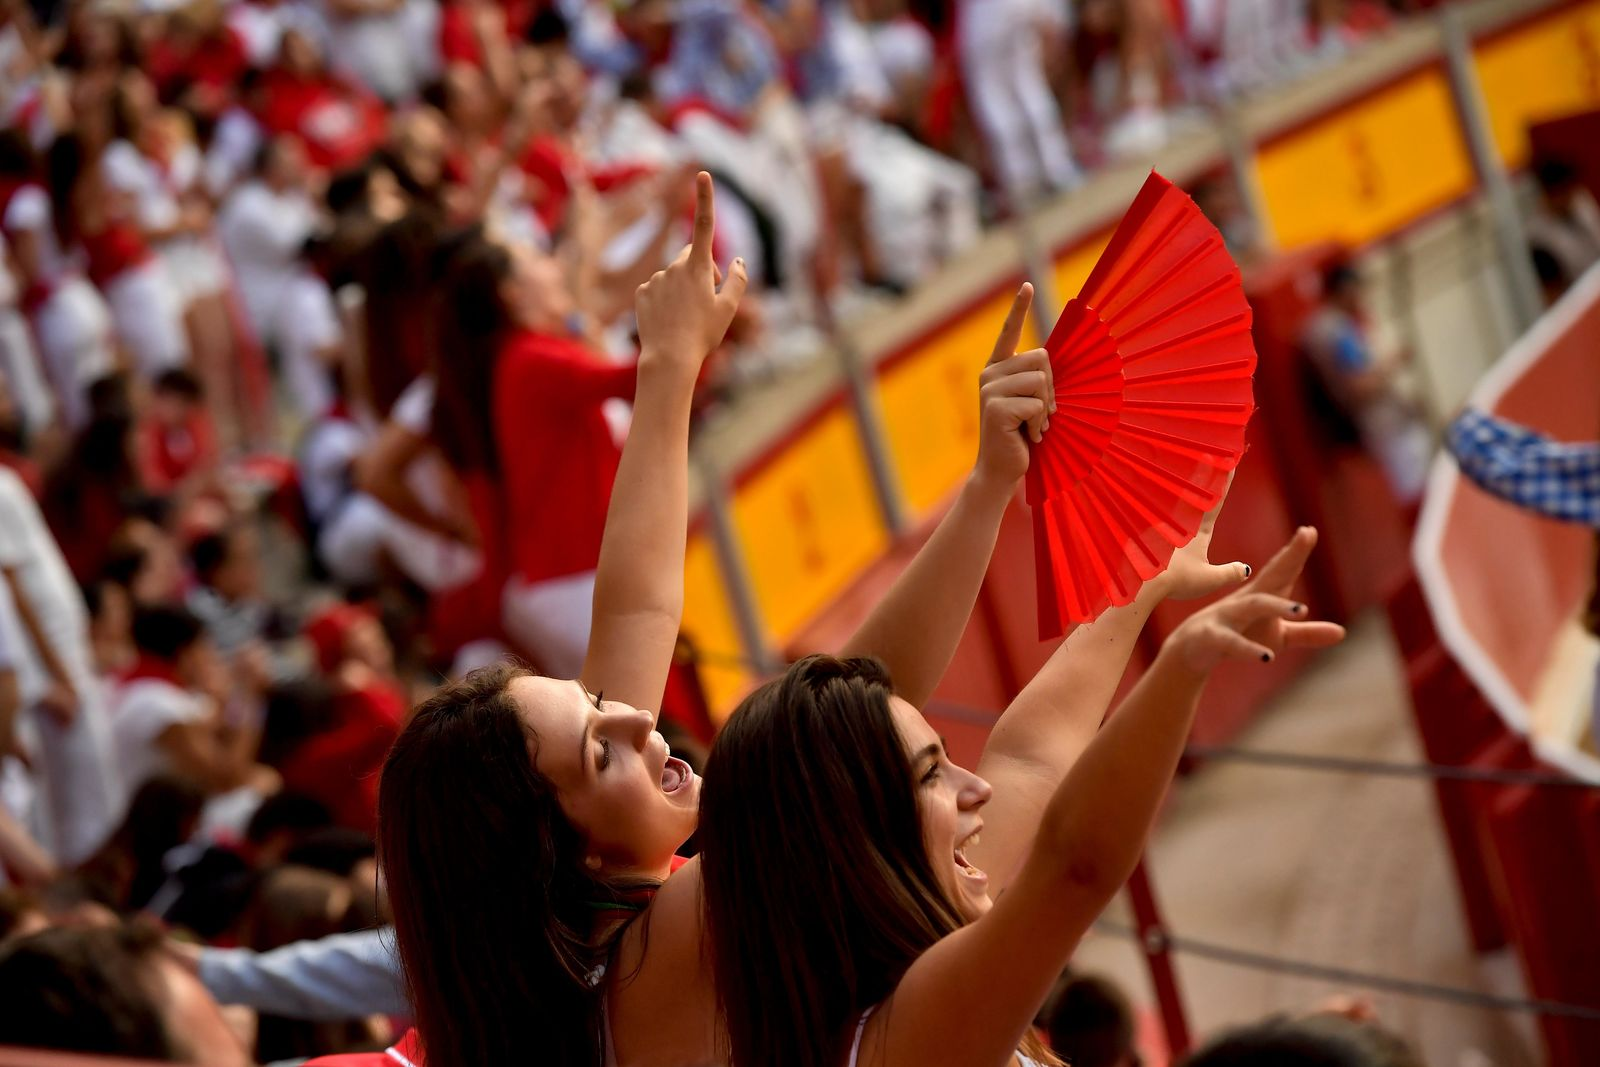 "Revellers wait for the arrival of the fighting bulls at the bullring during the San Fermin Festival, in Pamplona, northern Spain, Sunday, July 14, 2019. The San Fermin fiesta made internationally famous by Ernest Hemingway in his novel ""The Sun Also Rises"" draws around 1 million partygoers each year.(AP Photo/Alvaro Barrientos)"